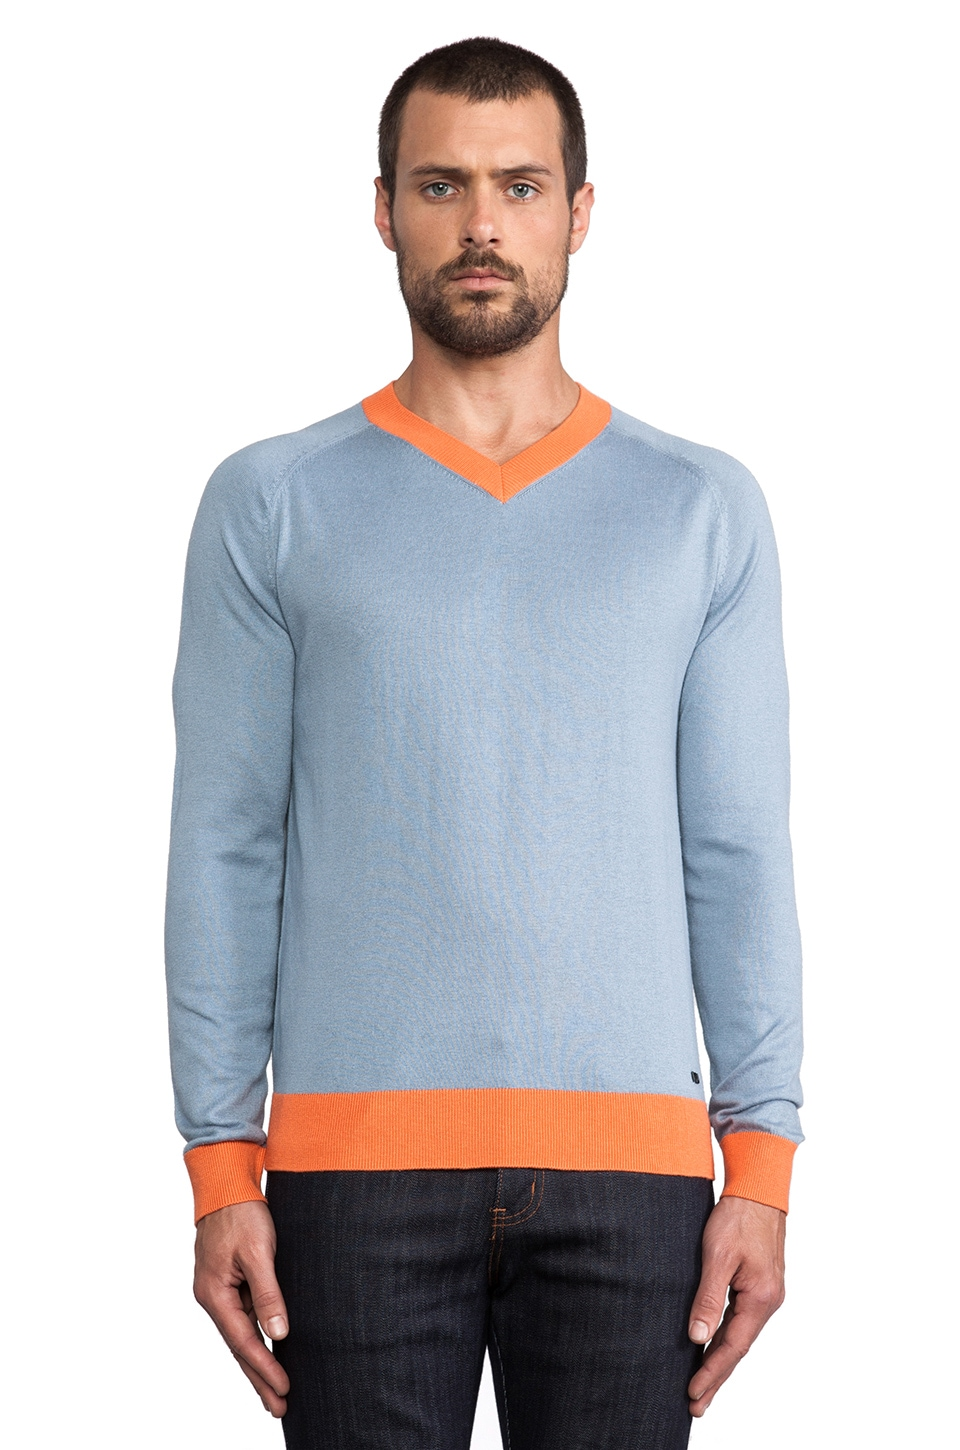 Marc by Marc Jacobs Silk Cotton Cashmere Sweater in Faded Khaki Multi